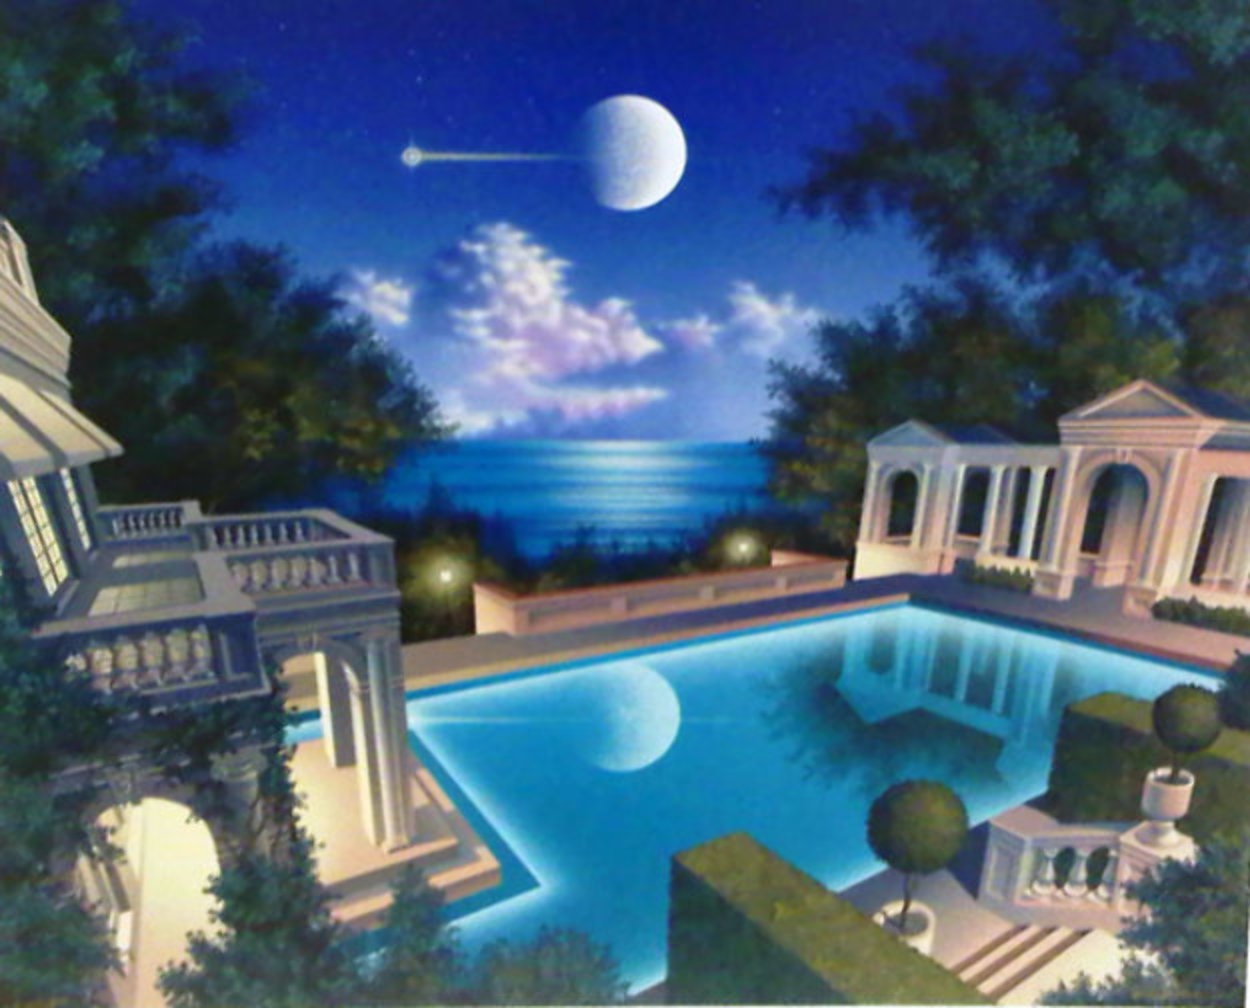 Freccia D'oro AP 1996 Limited Edition Print by Jim Buckels